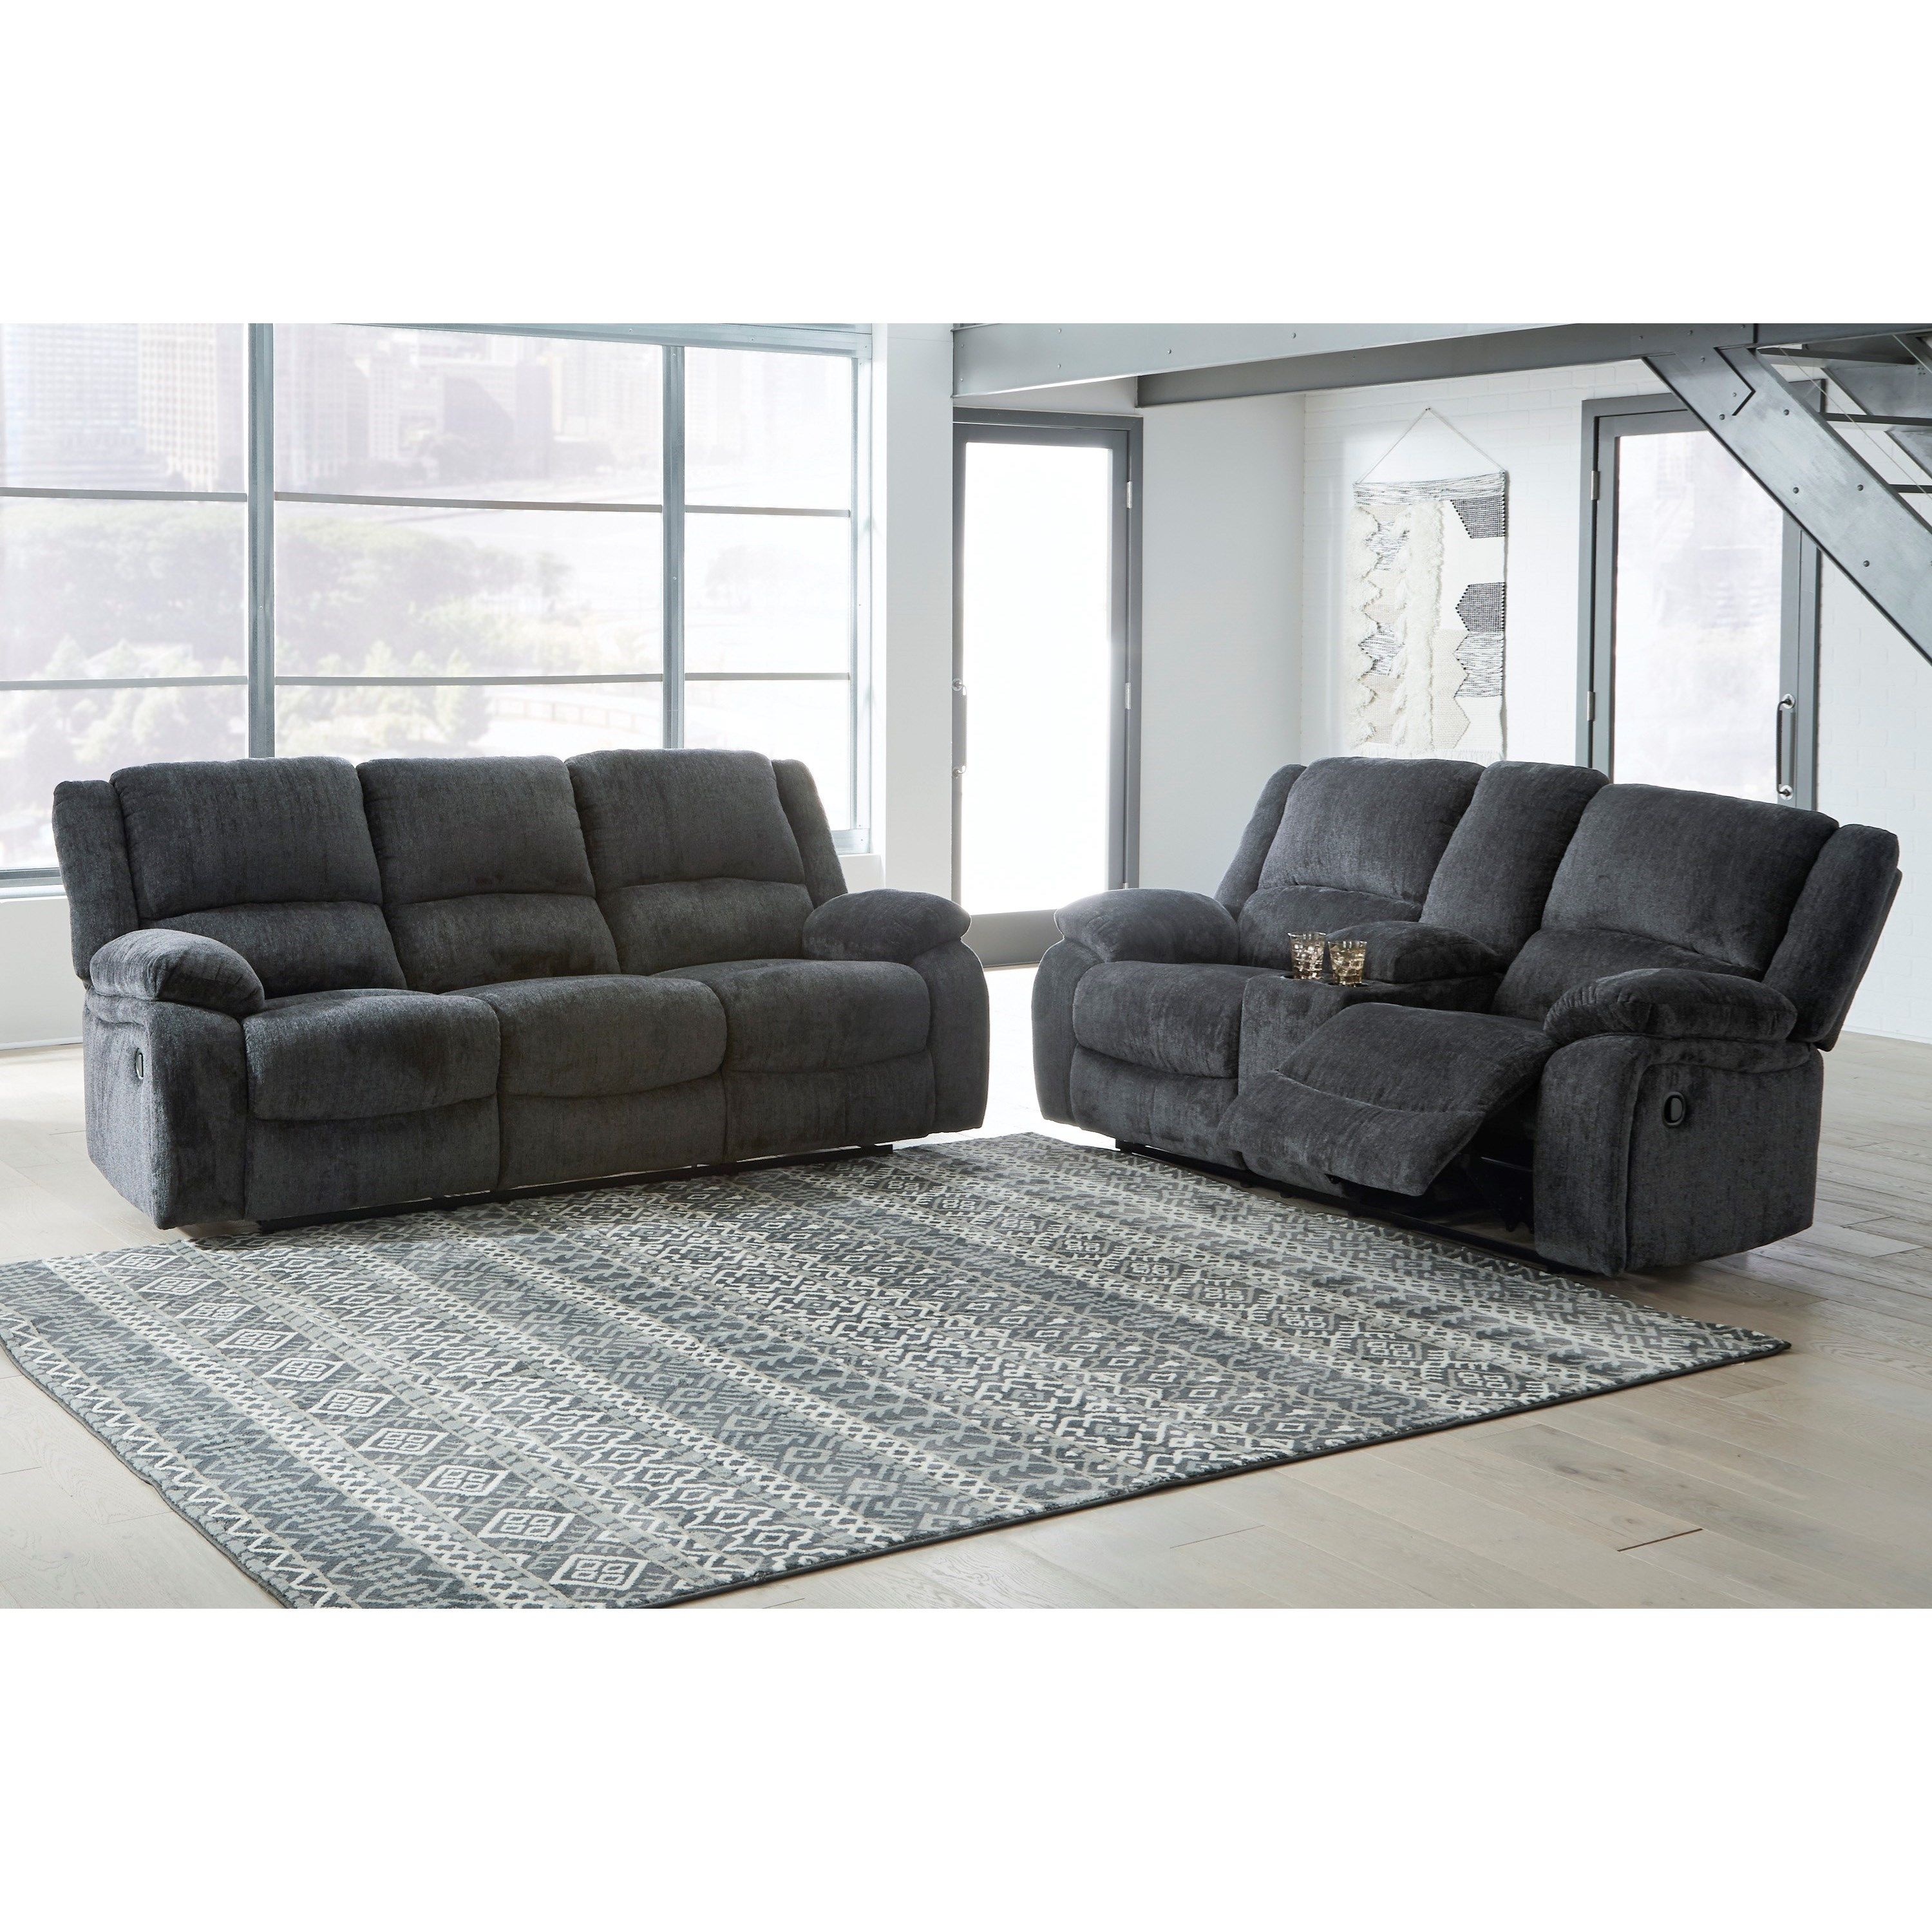 Draycoll Power Reclining Living Room Group by Signature Design by Ashley at Northeast Factory Direct